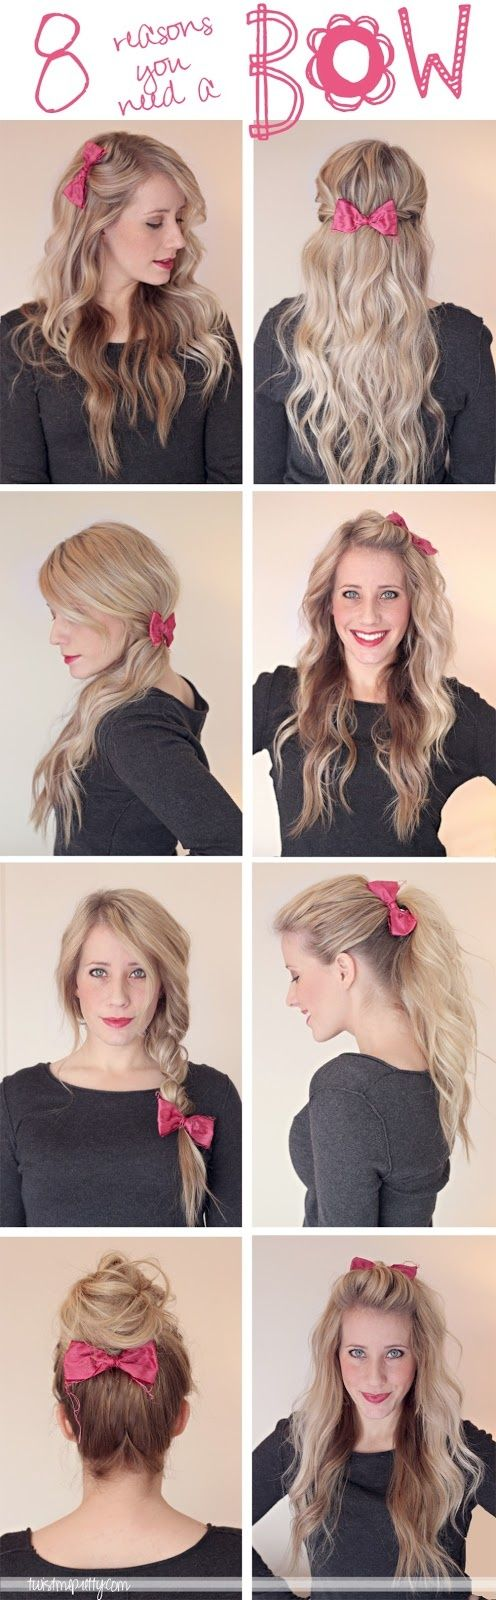 8 Ways To Use A Bow Stores Ebay Ca Theseedhouse Hair Styles Long Hair Styles Hair Beauty